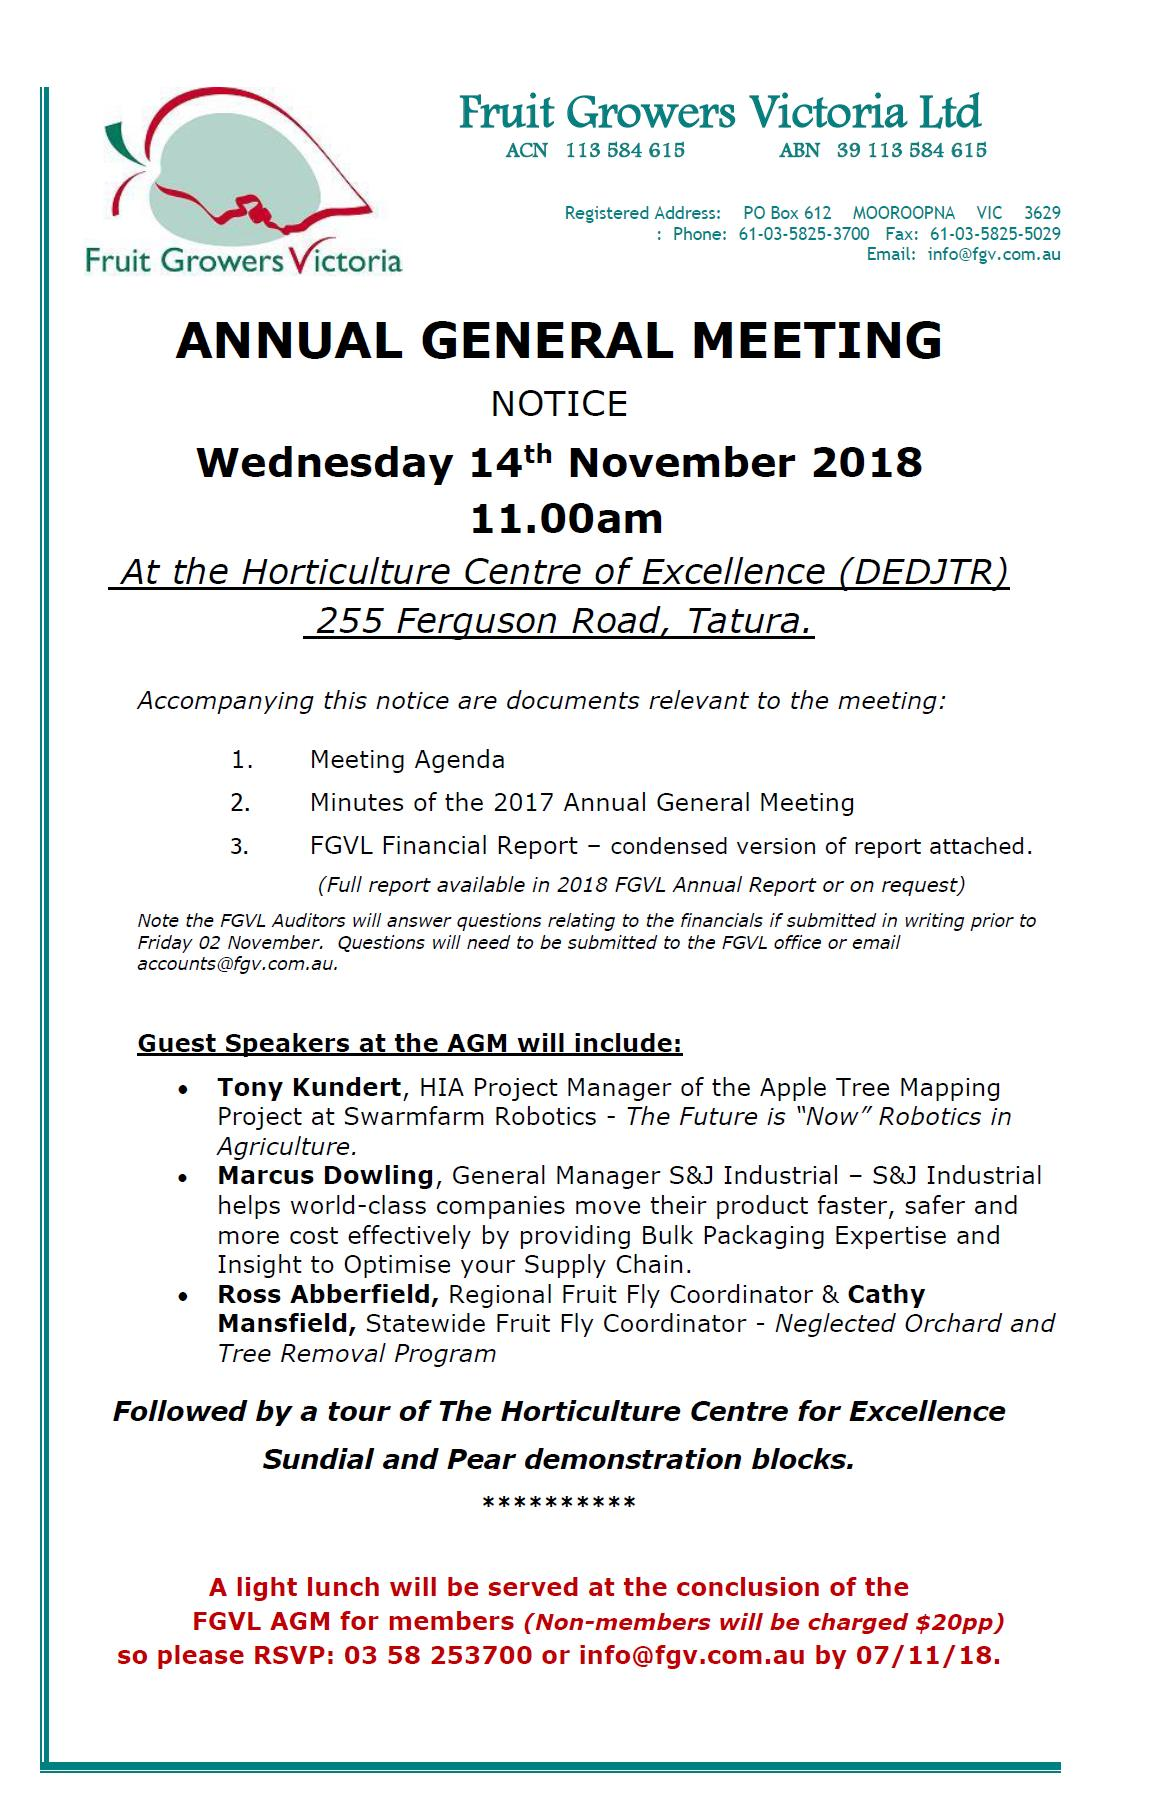 FGV AGM Notice 14th November 2018 JPEG